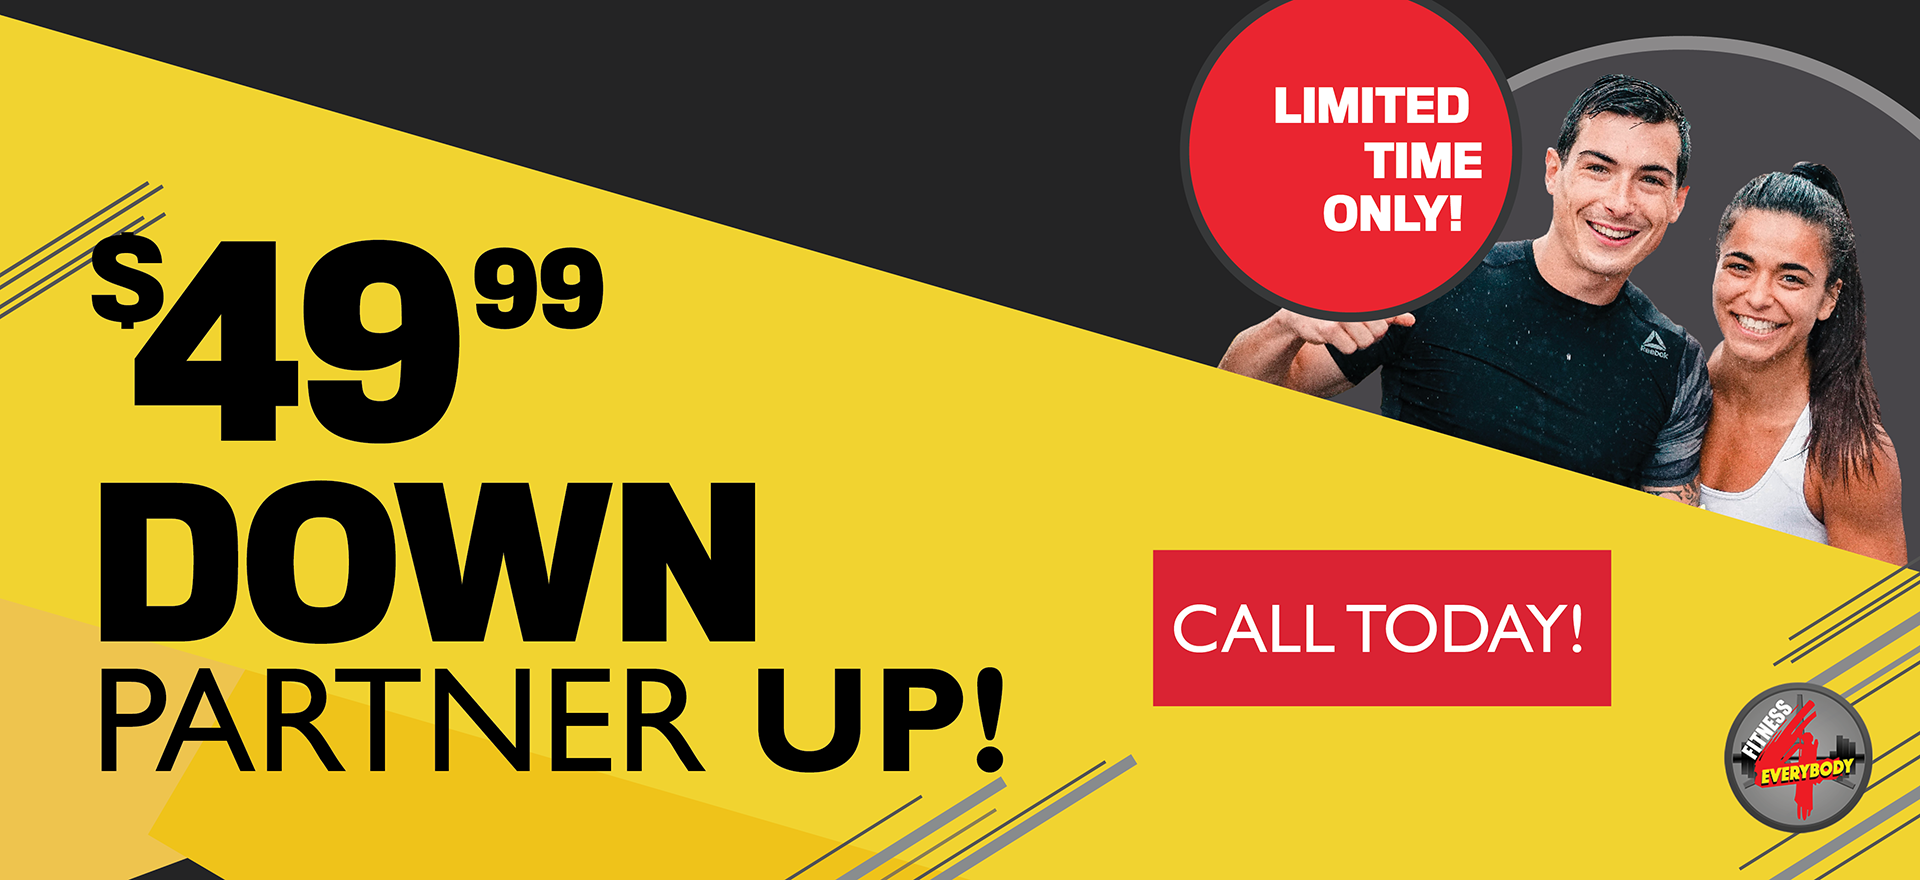 $49 Down Partner Up Membership Special at Fitness 4 Everybody Palm Beach Gardens